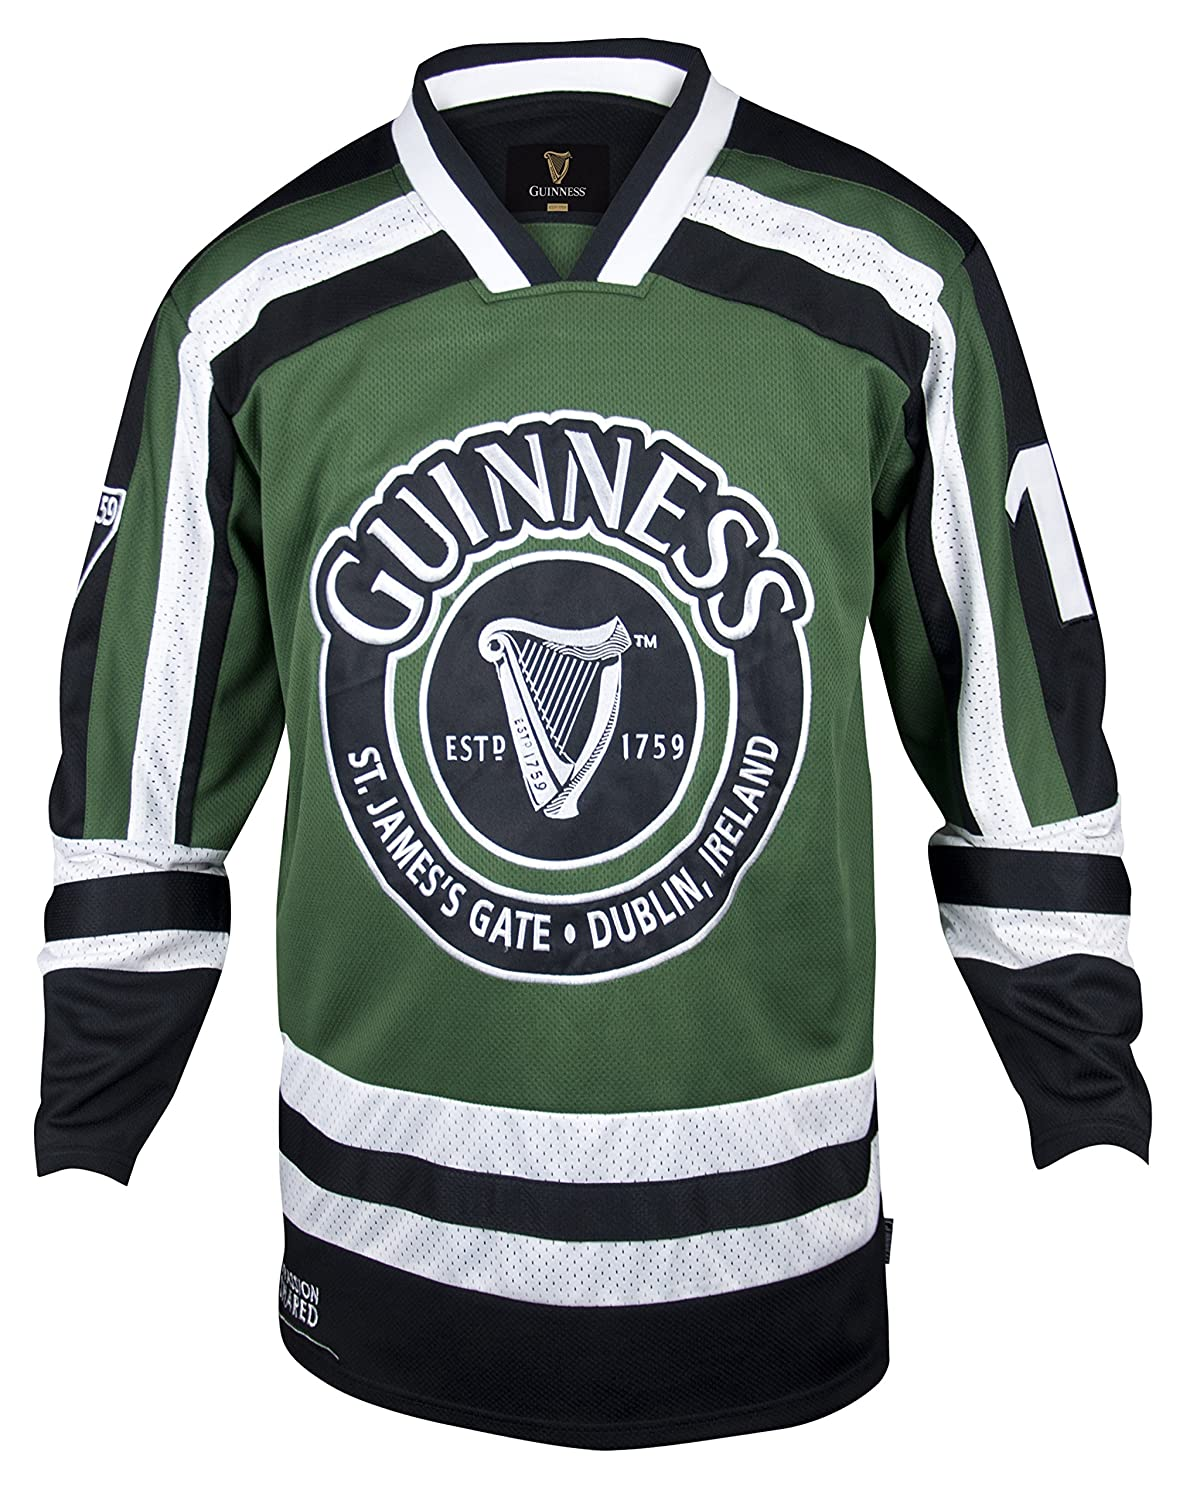 Guinness Green & White Harp Hockey Jersey - Embroidered Polyester...